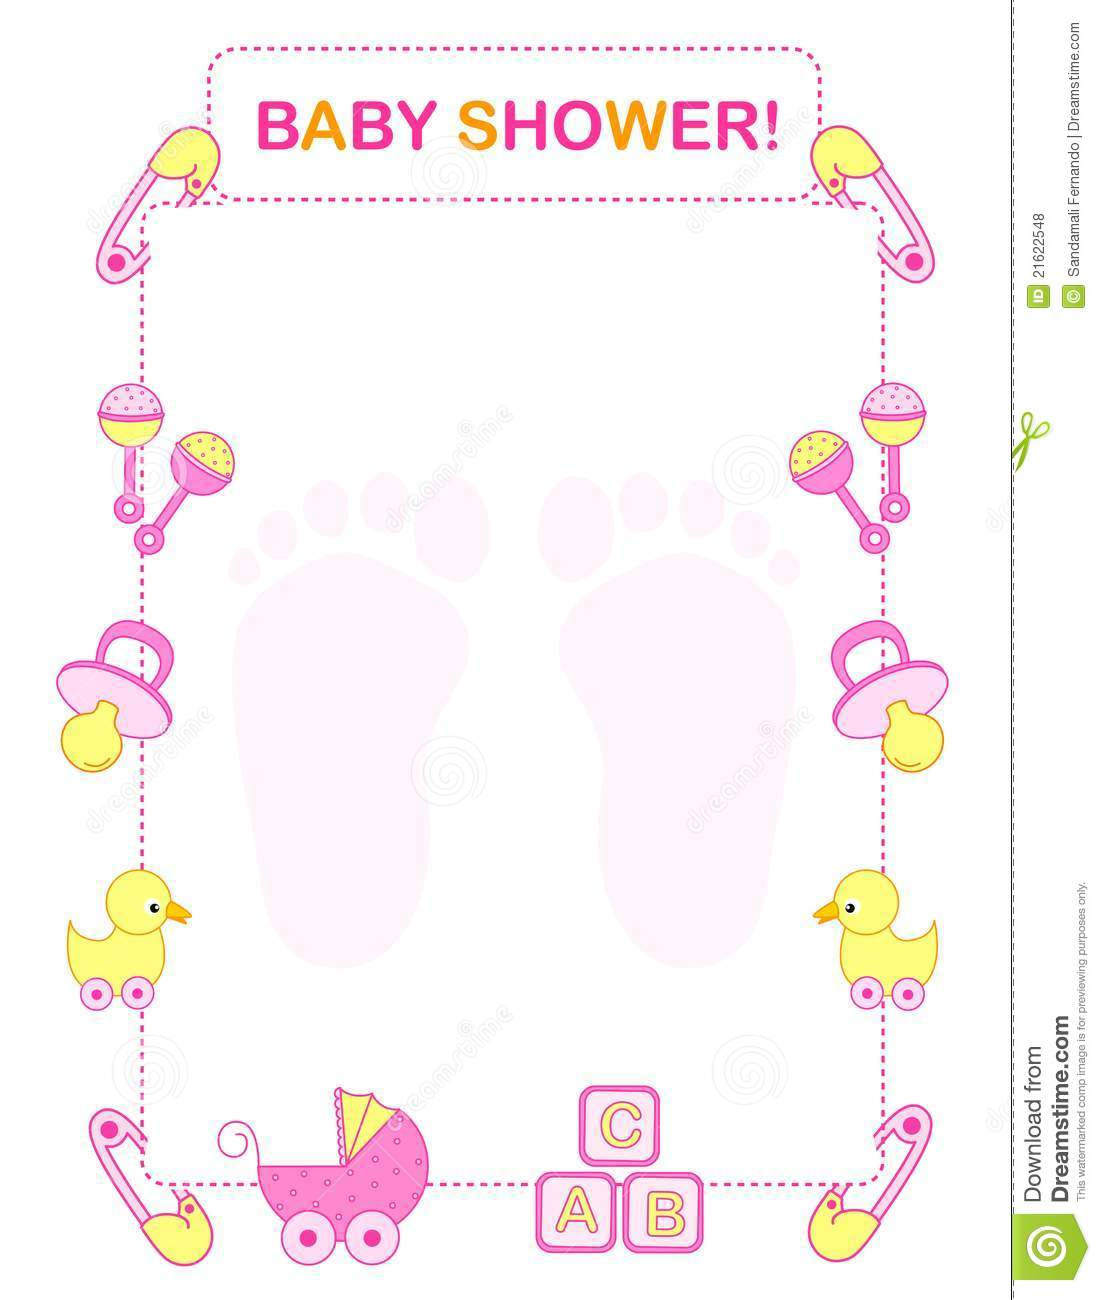 4 Images of Printable Baby Shower Borders